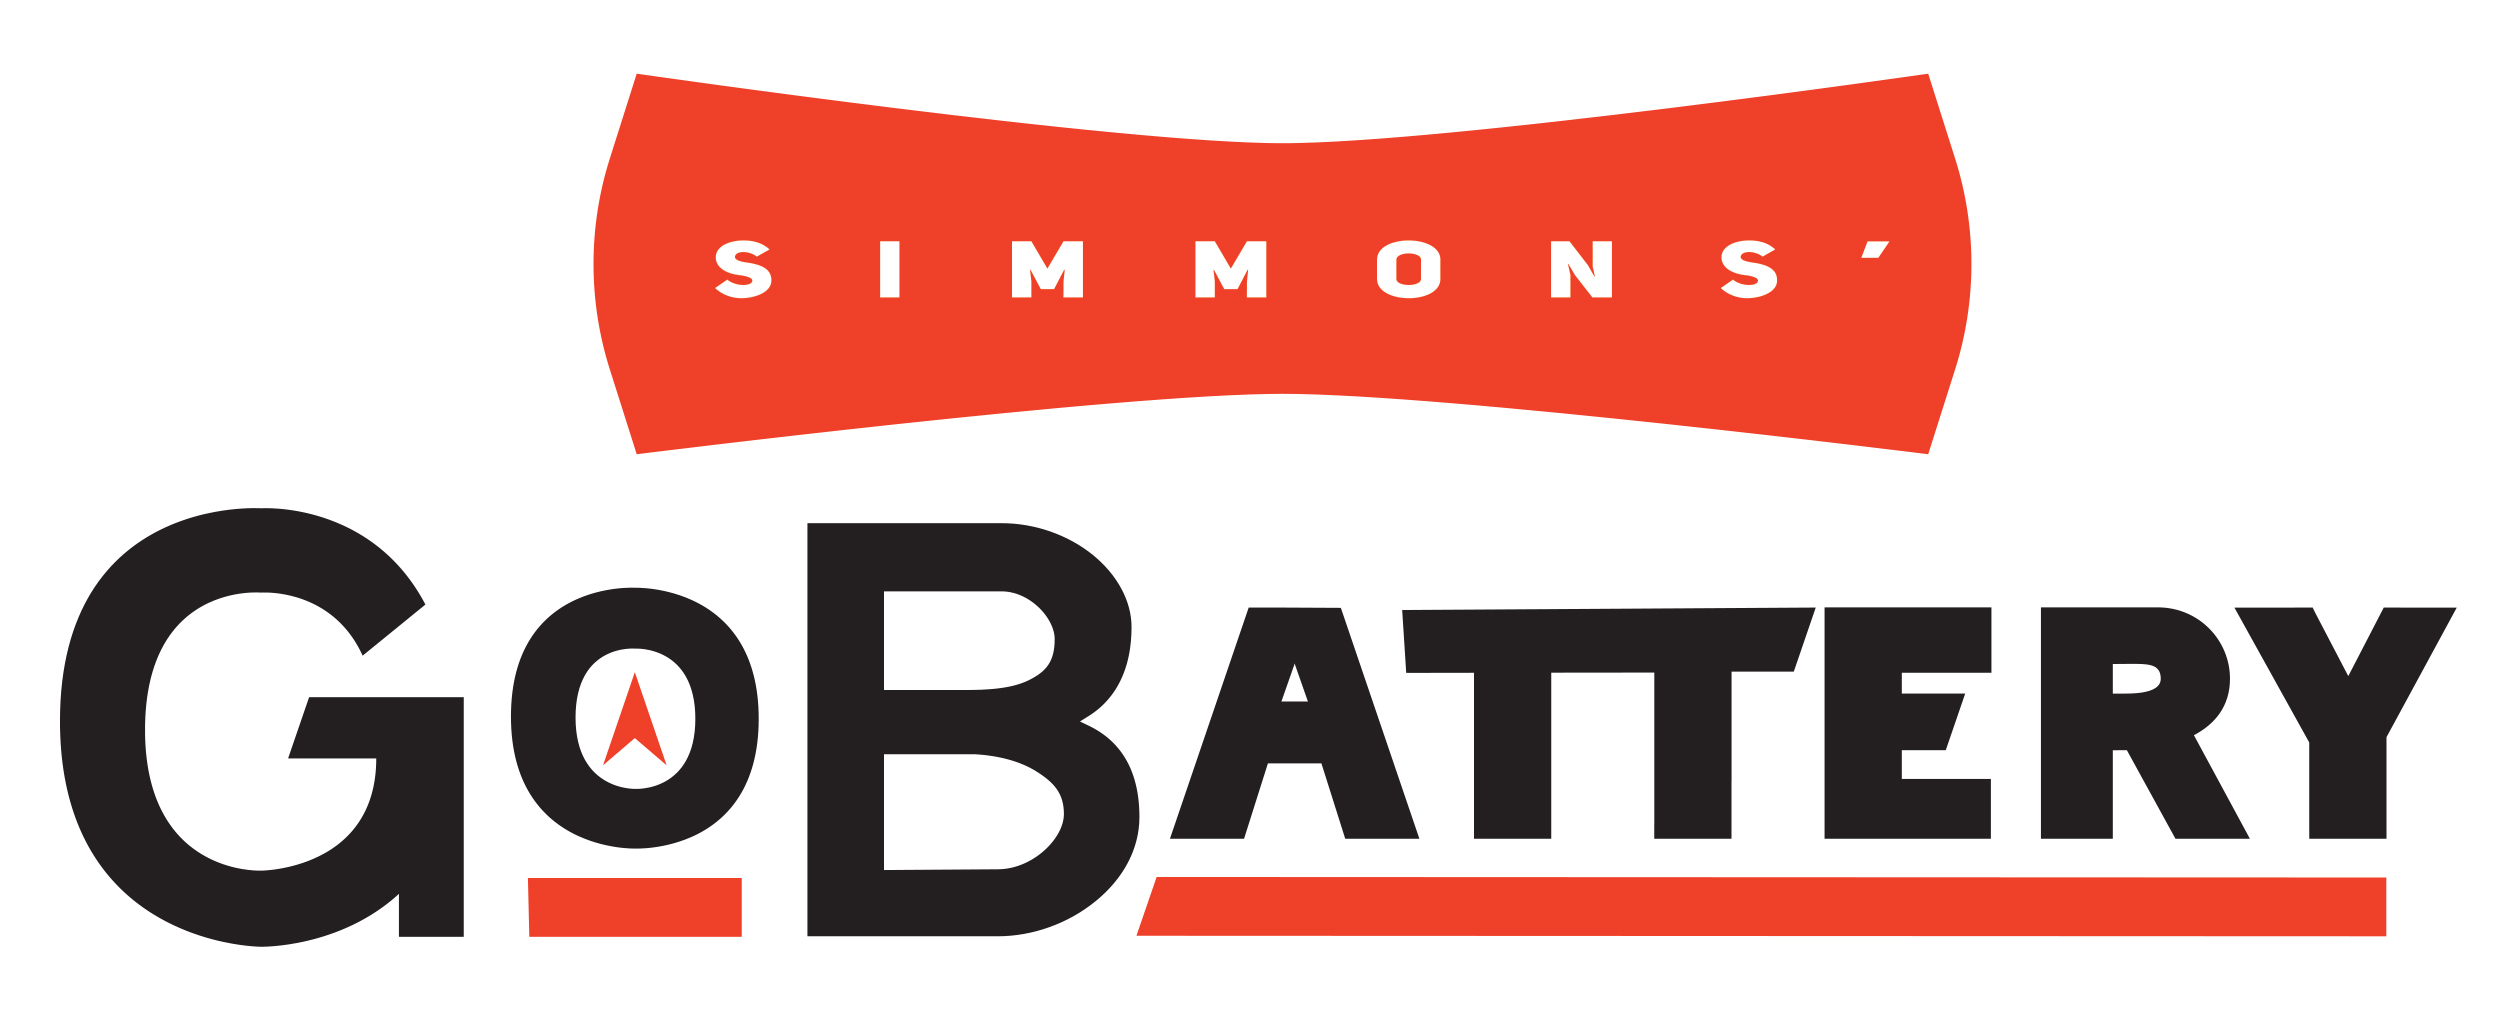 Simmons logo and link to website